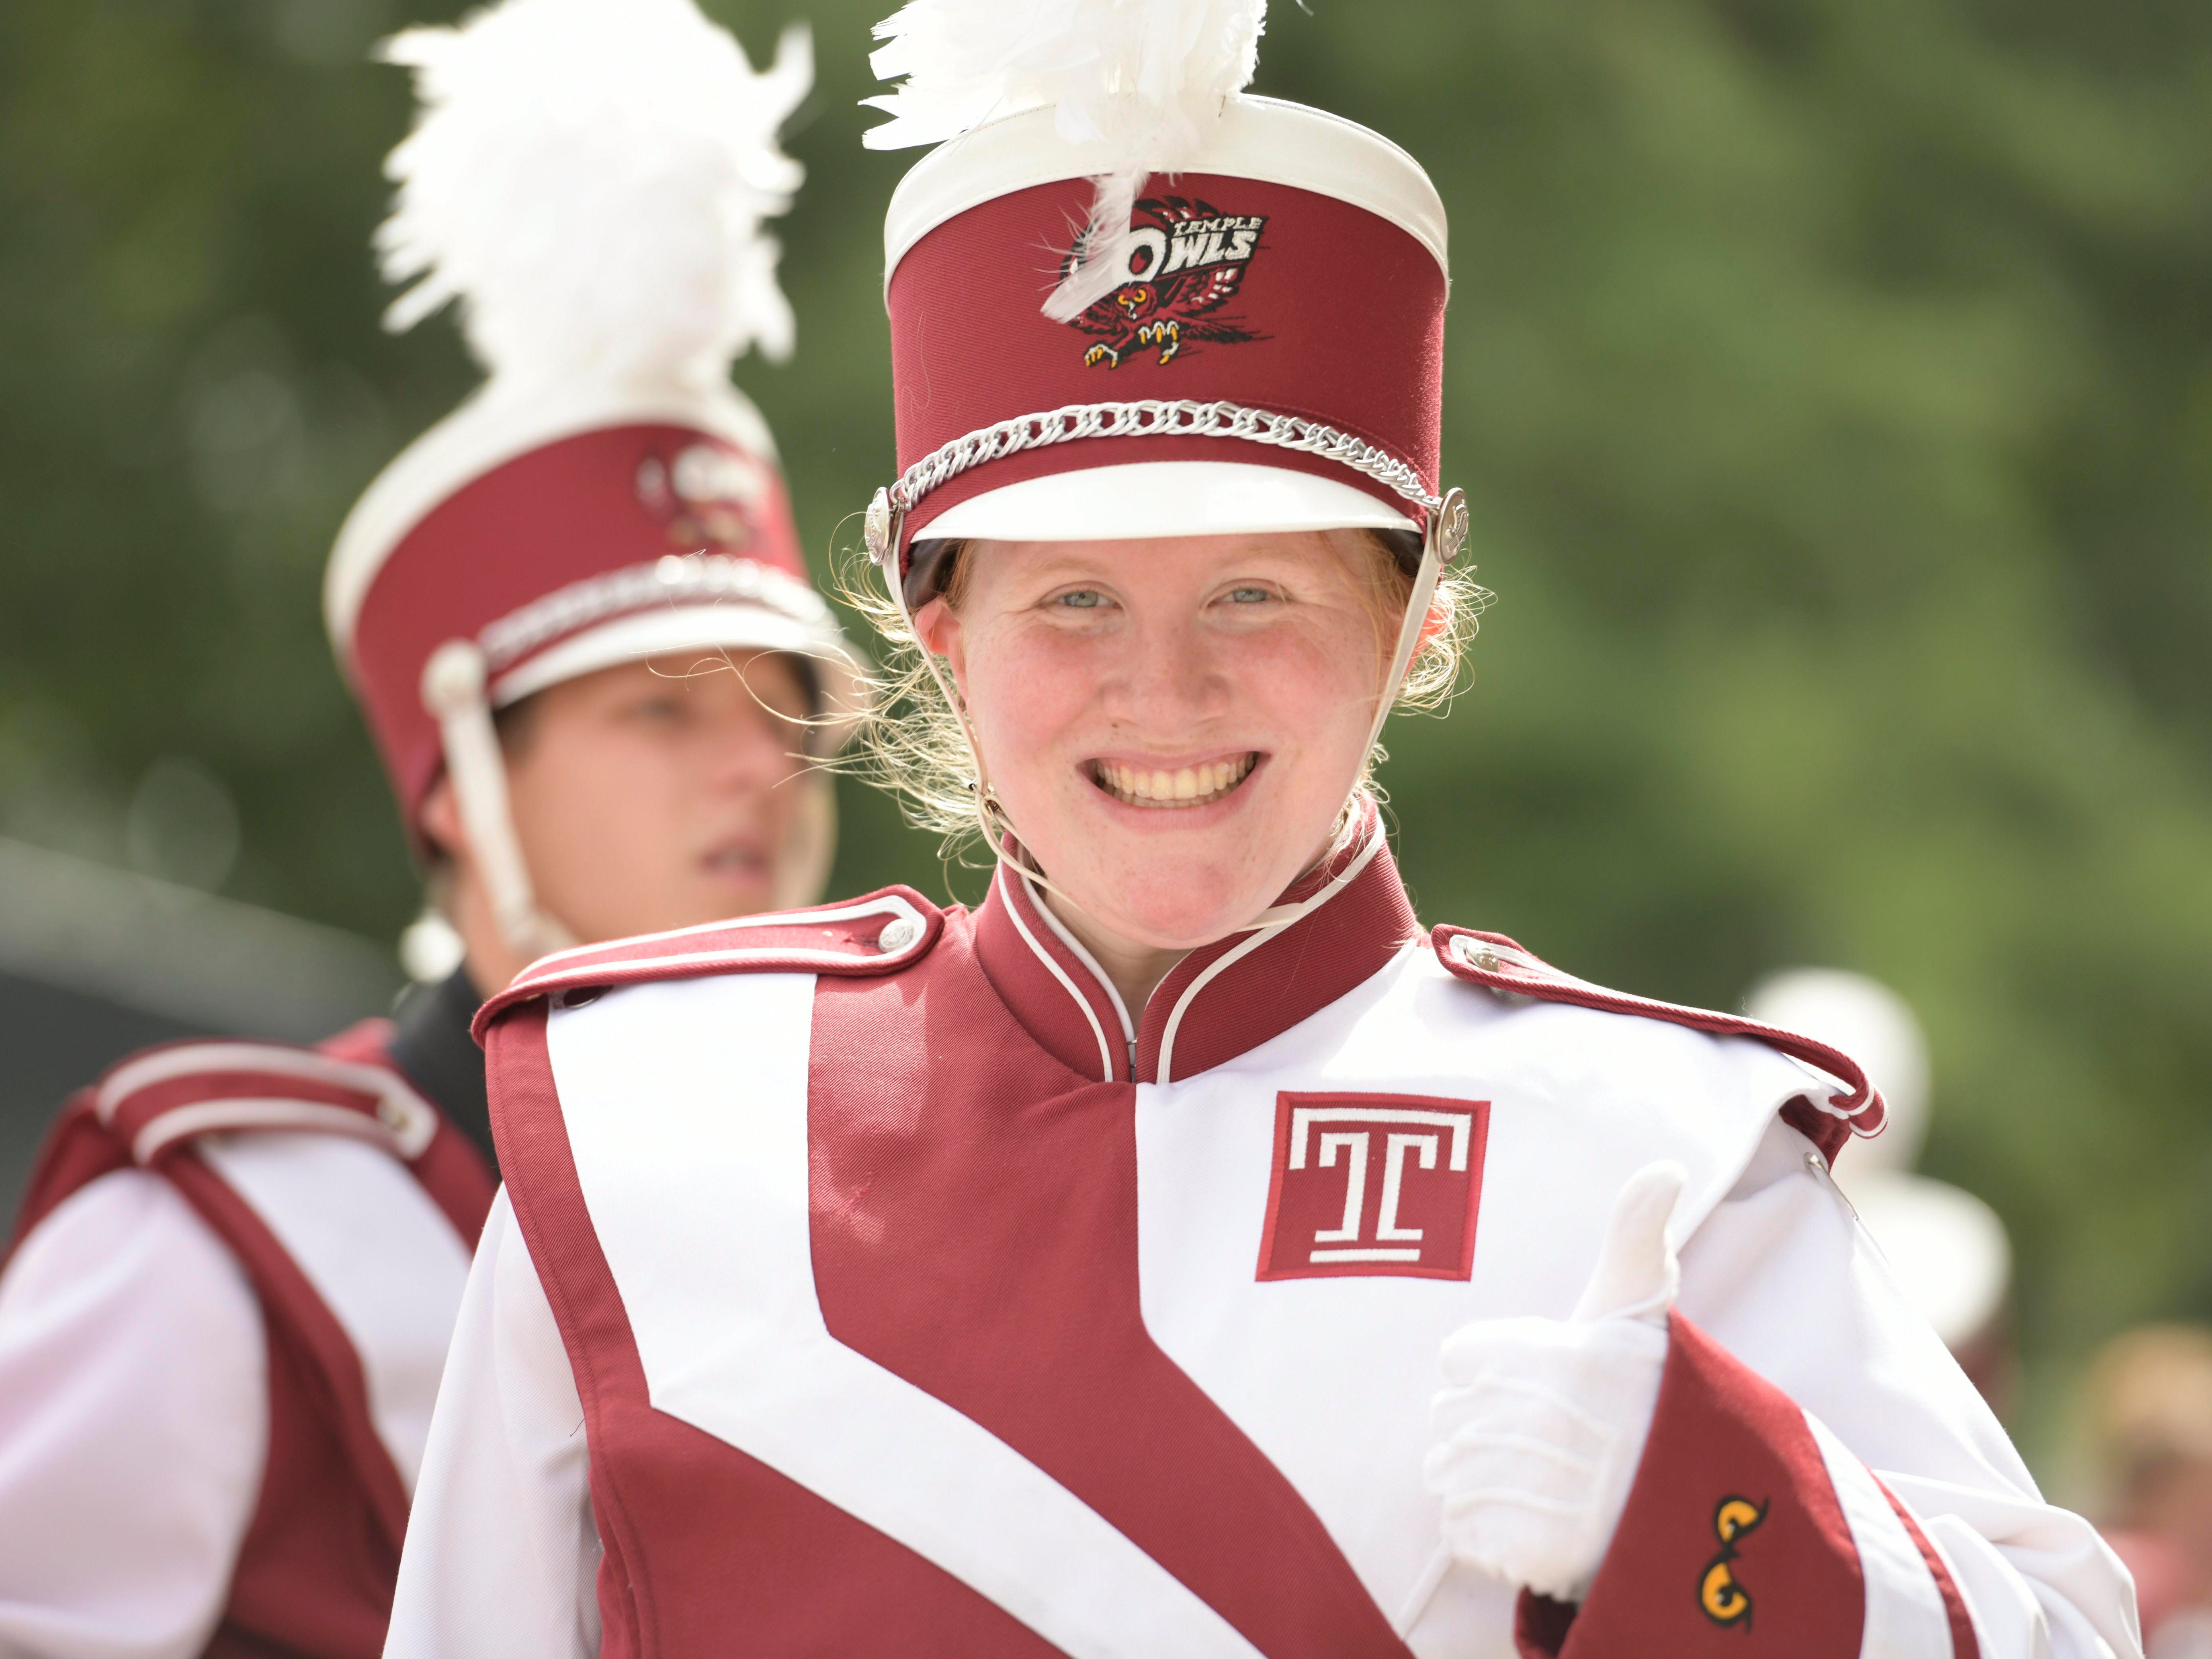 Temples Owl band members prepare to enter the stadium before the game against the Maryland Terrapins.